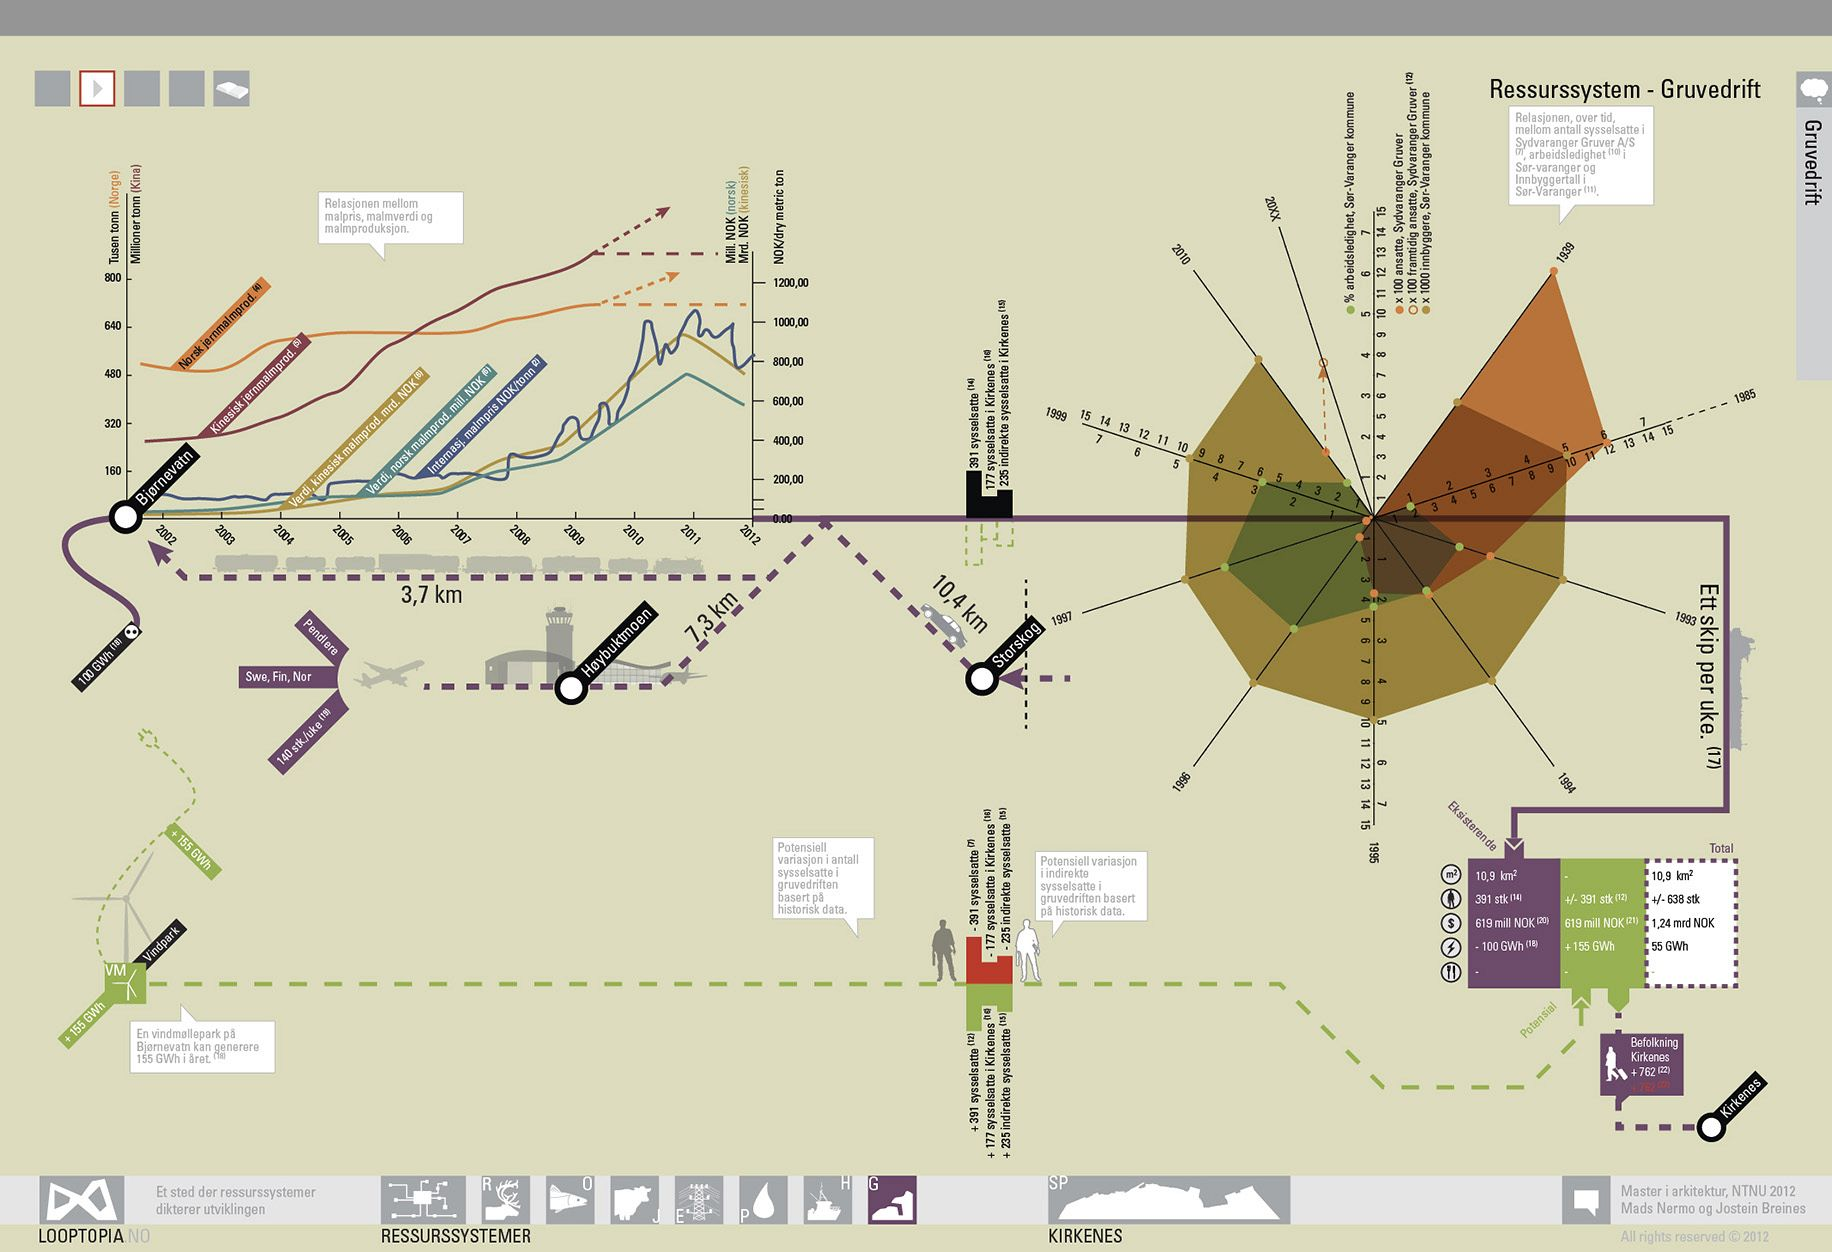 Looptopia by Mads Nermo and Jostein Breines. Overview of mining resources systems.